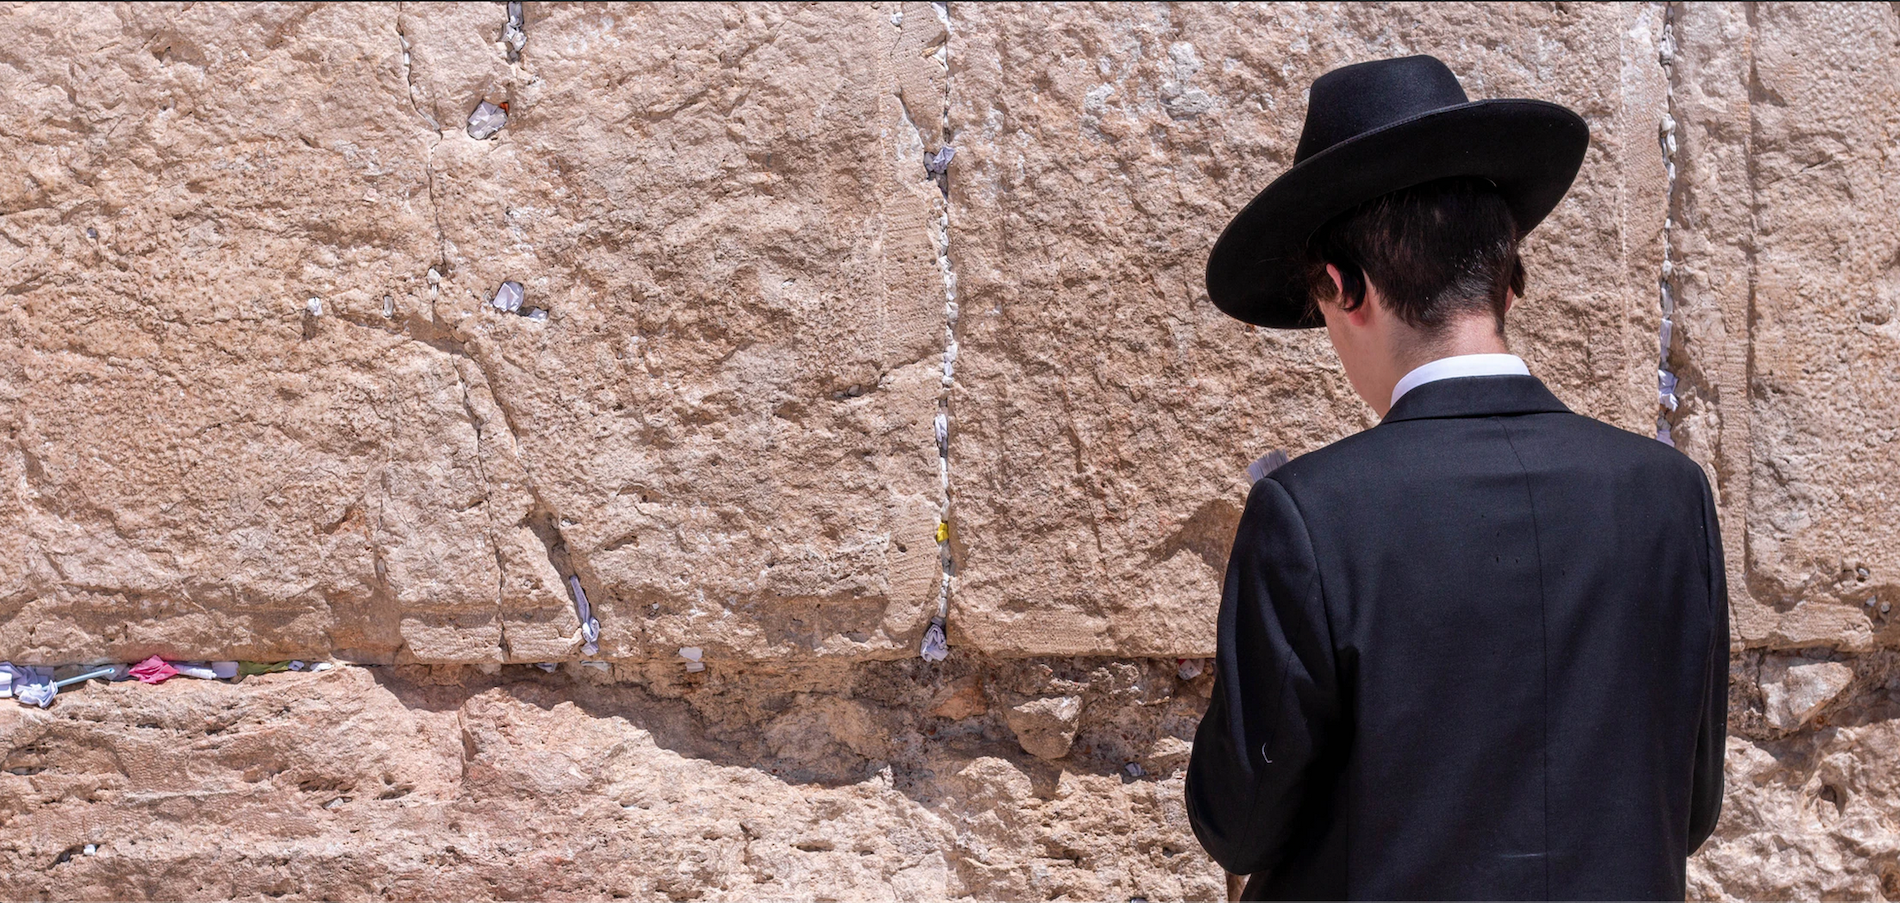 The Big Story That The Media Always Misses About Orthodox Jews